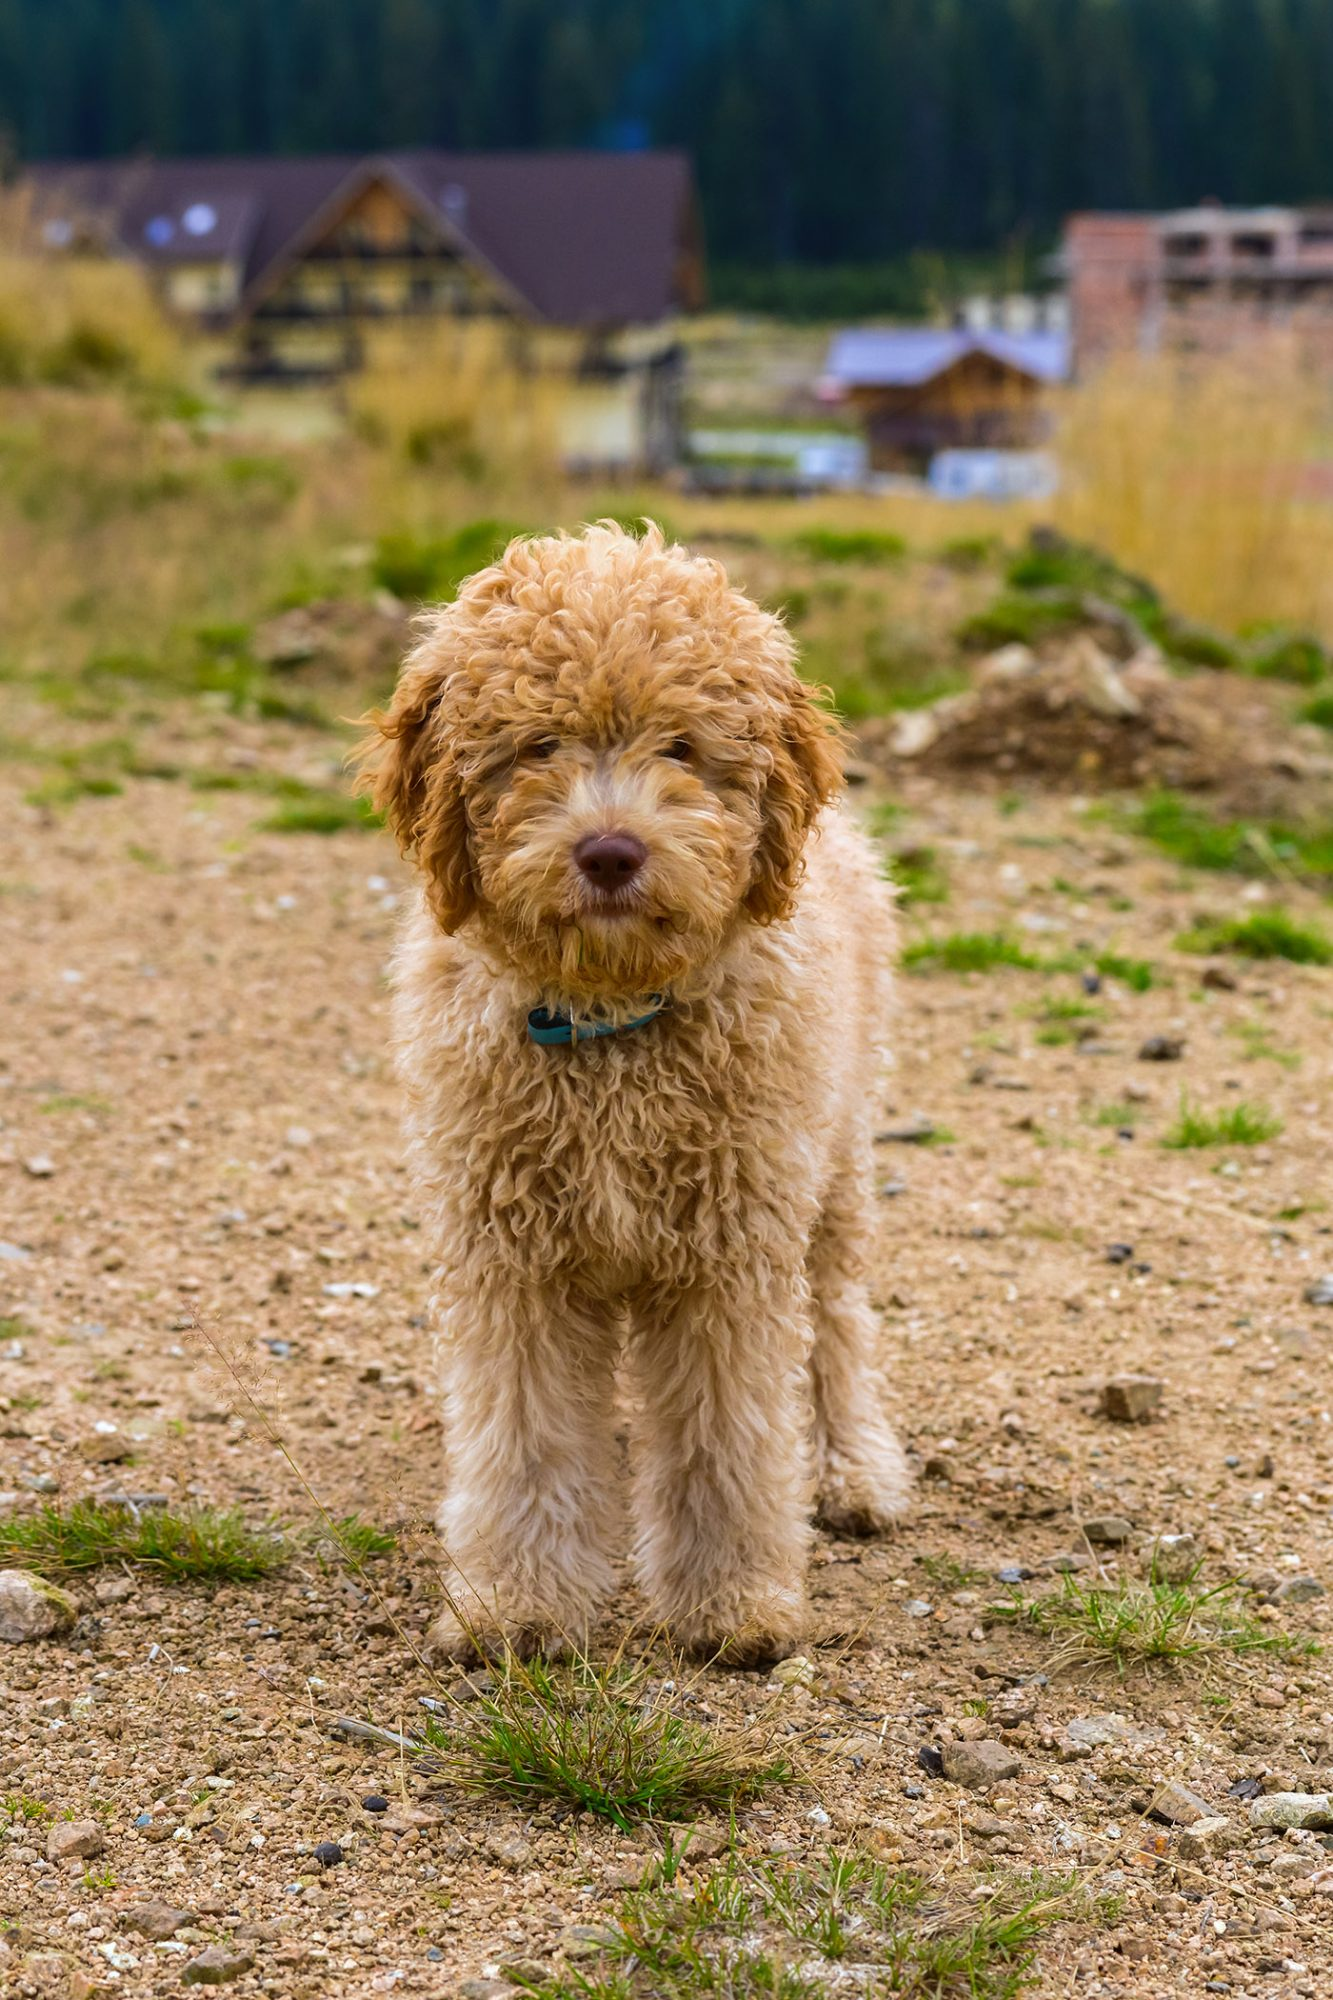 brown lagotto romagnolo or roman water dog standing on dirt path